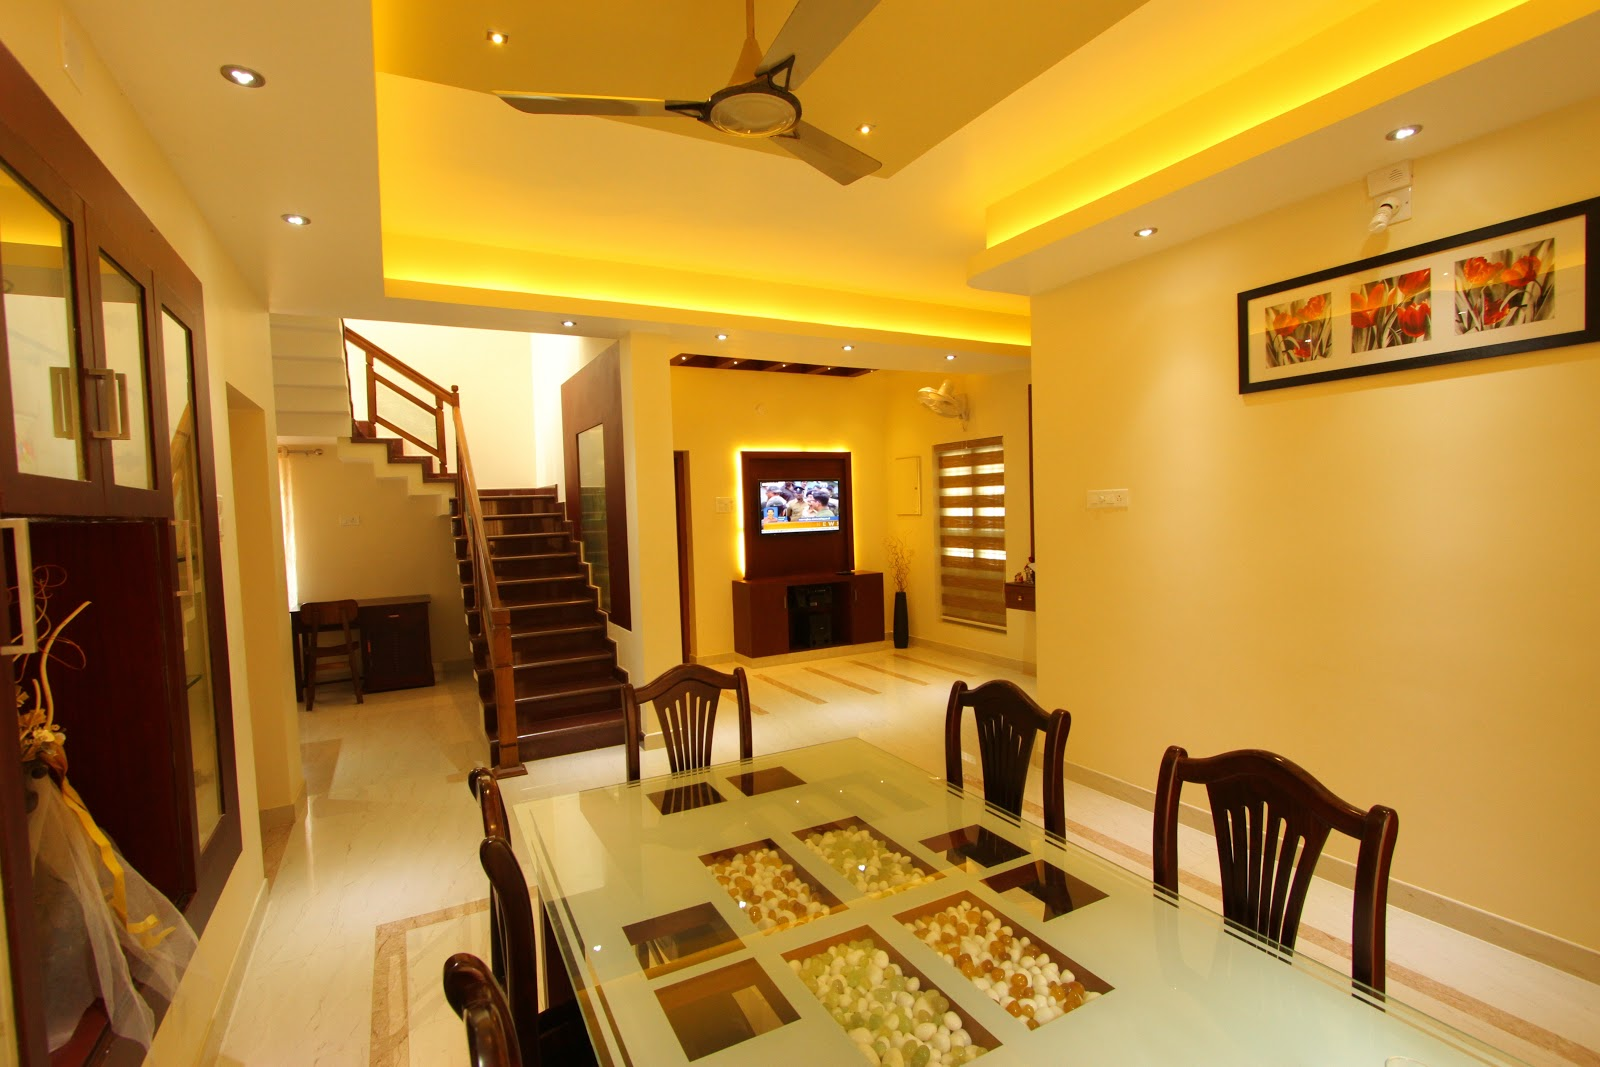 Shilpakala interiors award winning home interior design for Interior design pictures